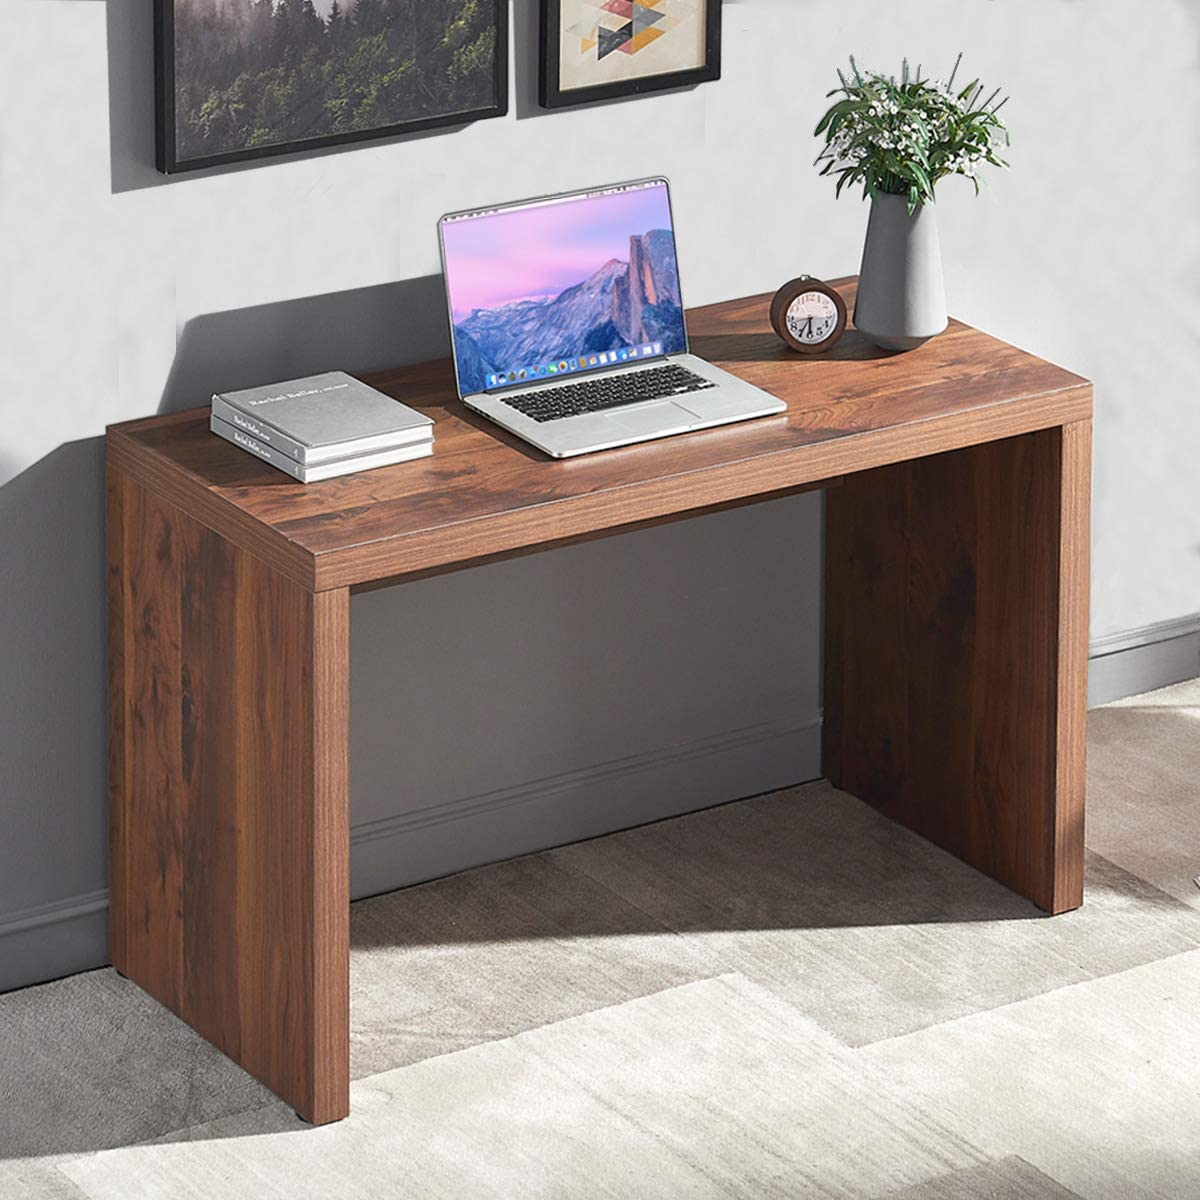 Furnichoi Rustic Computer Desk, Vintage Wood Study Writing Desk, Simple Sturdy Home Office Desk for PC Laptop Desktop, Brown, 47 inch